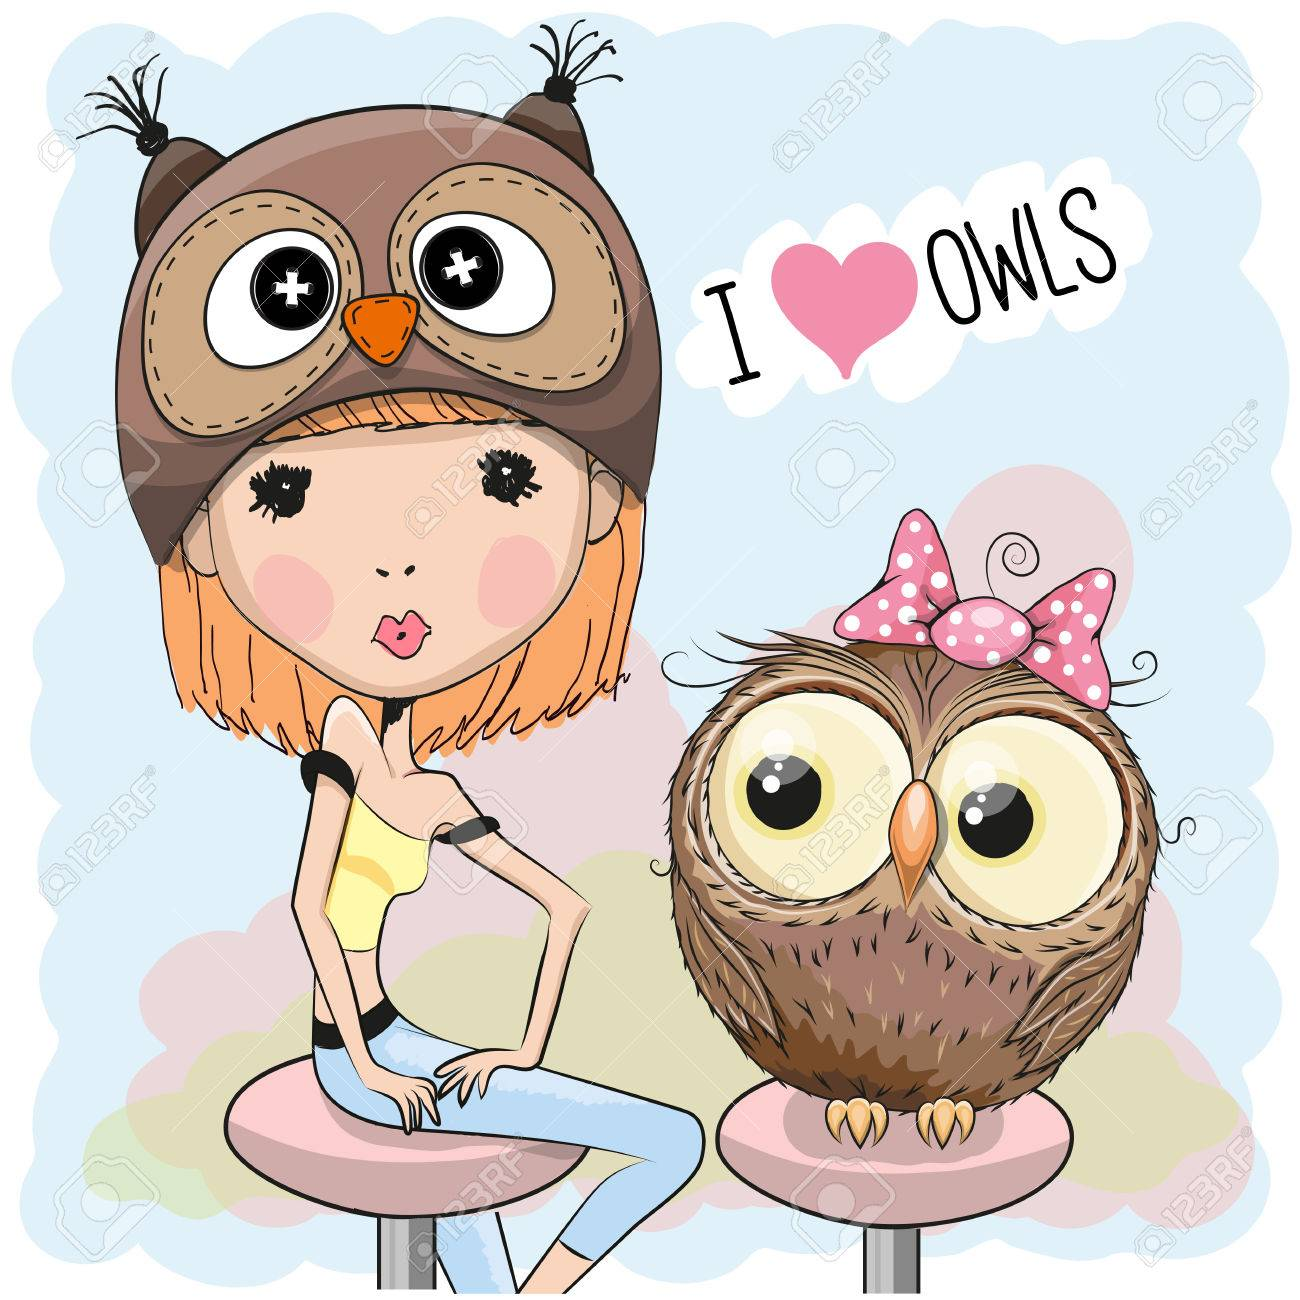 Cute Girl in a owl hat with owl Stock Vector - 48179048 fe77a34a24ab